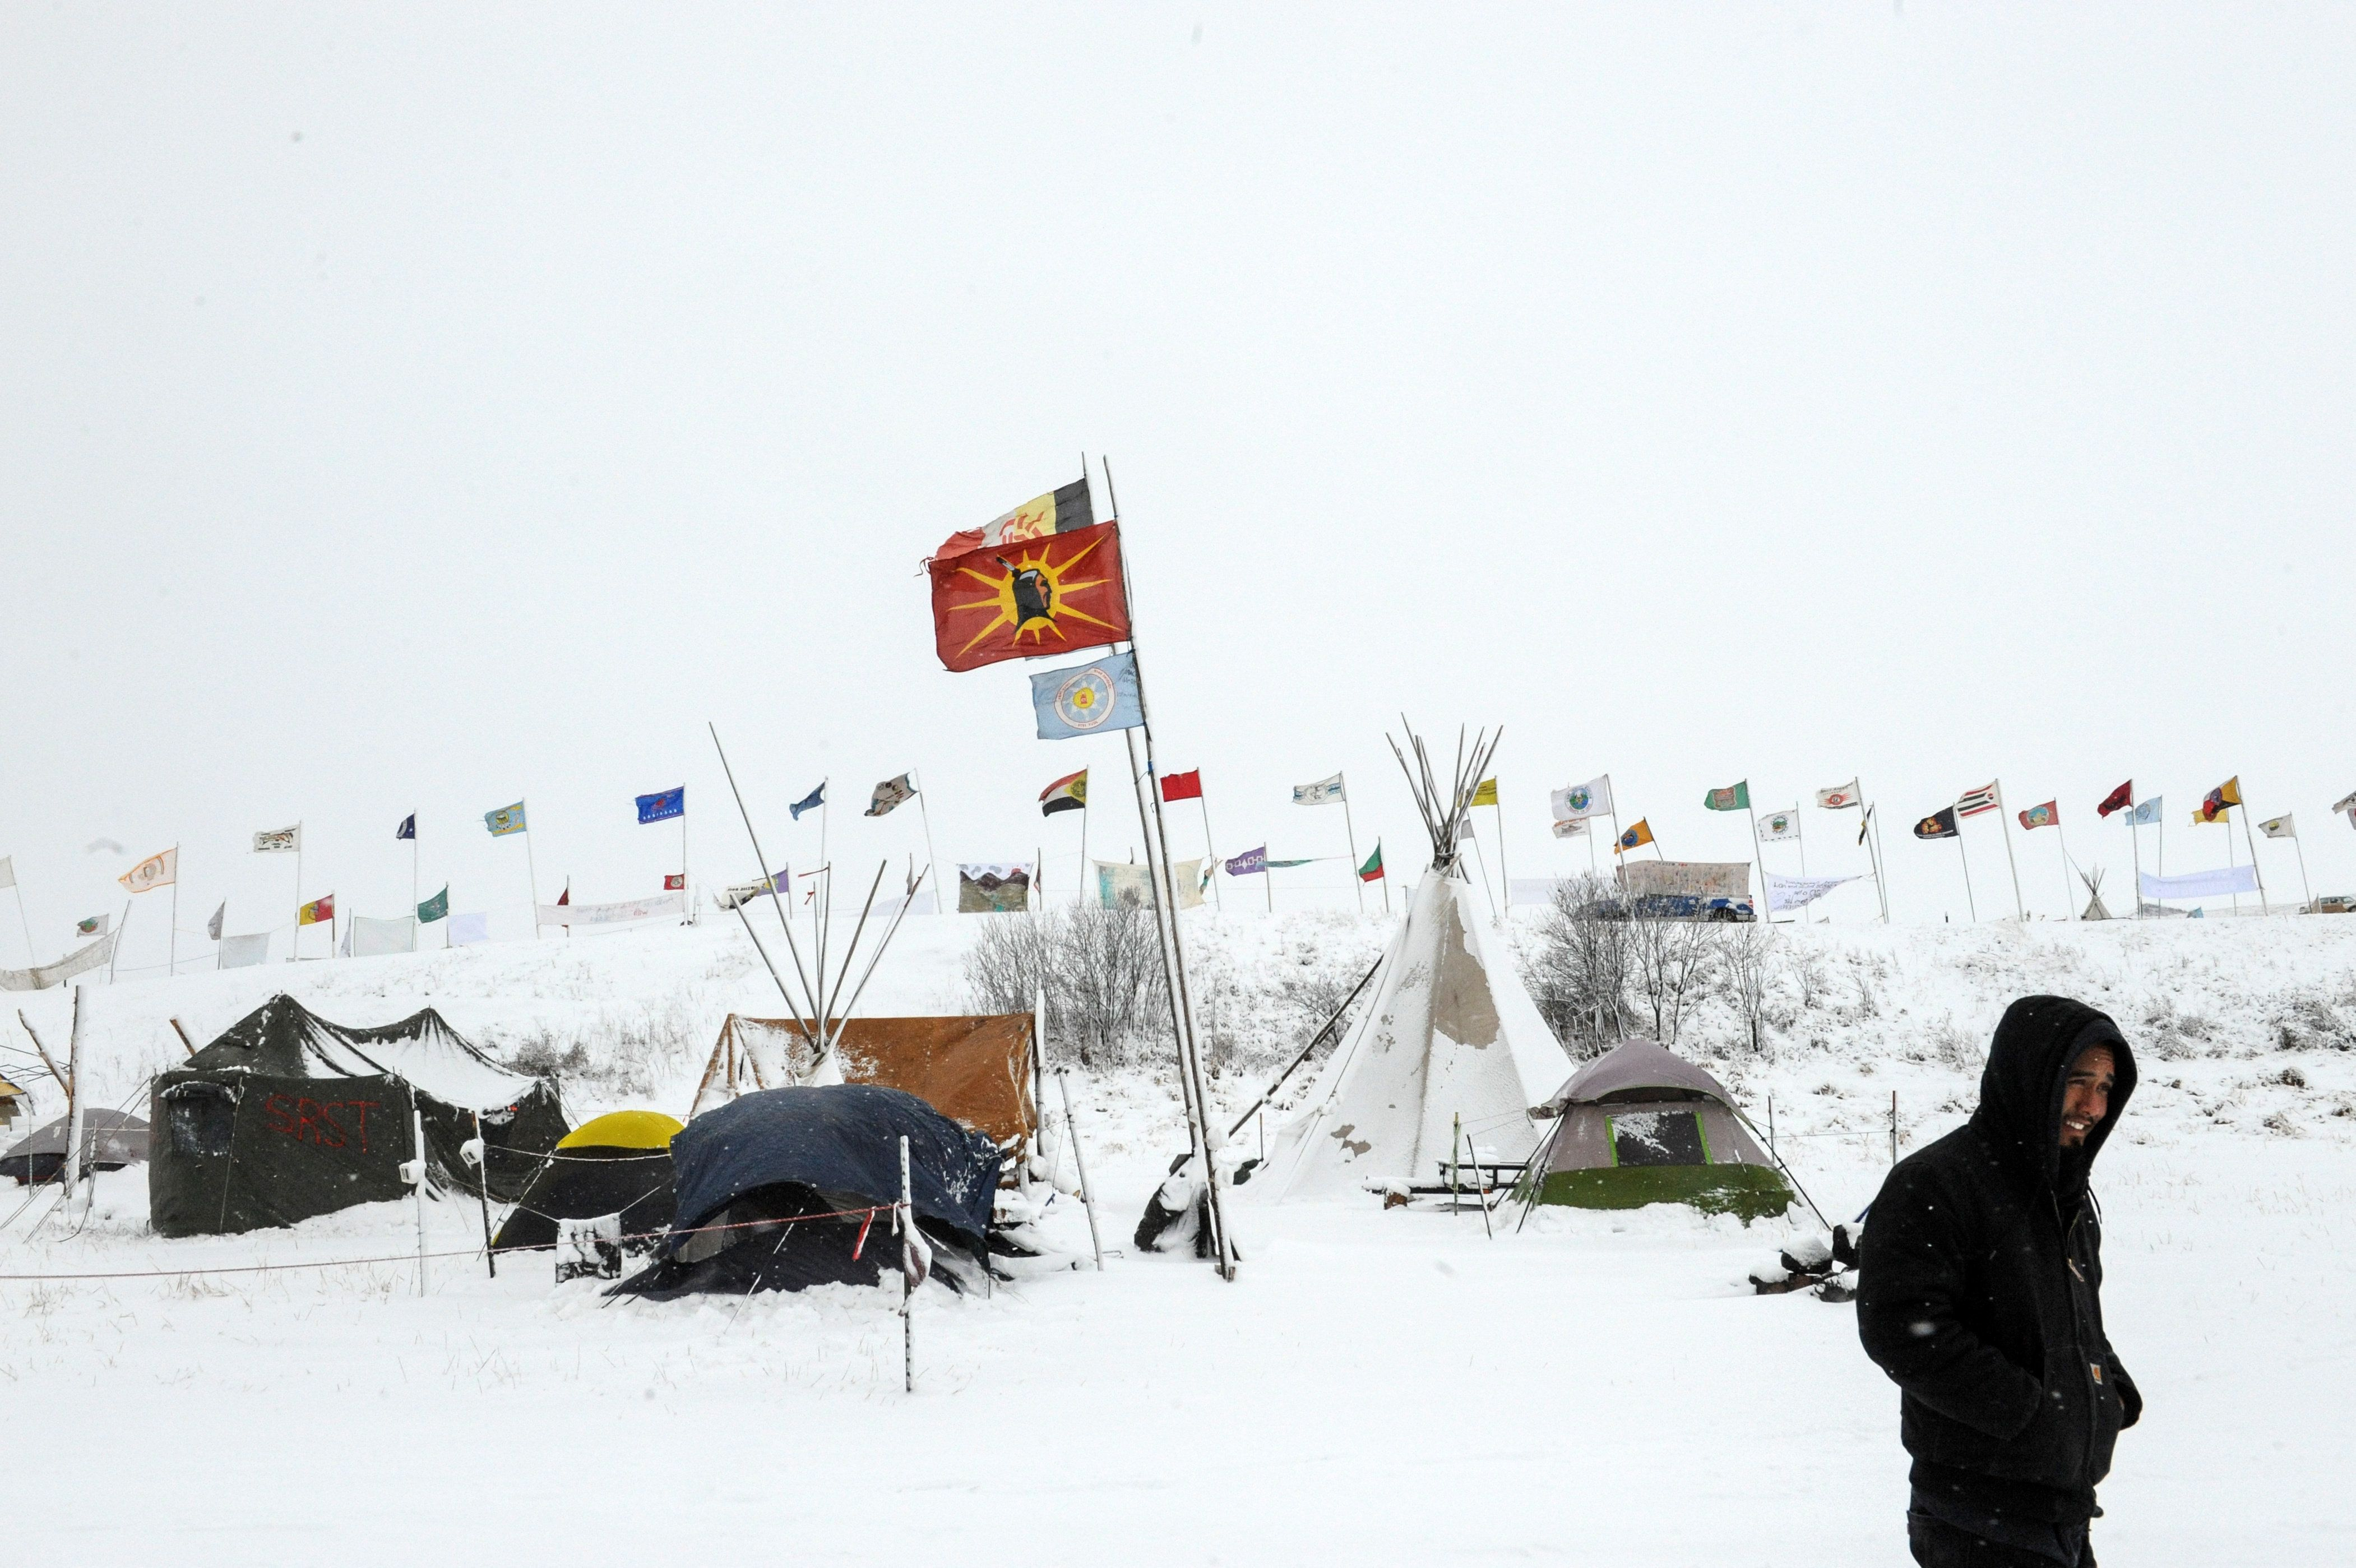 Snow blankets the Oceti Sakowin camp, site of protests against construction of the Dakota Access Pipeline near the Standing R